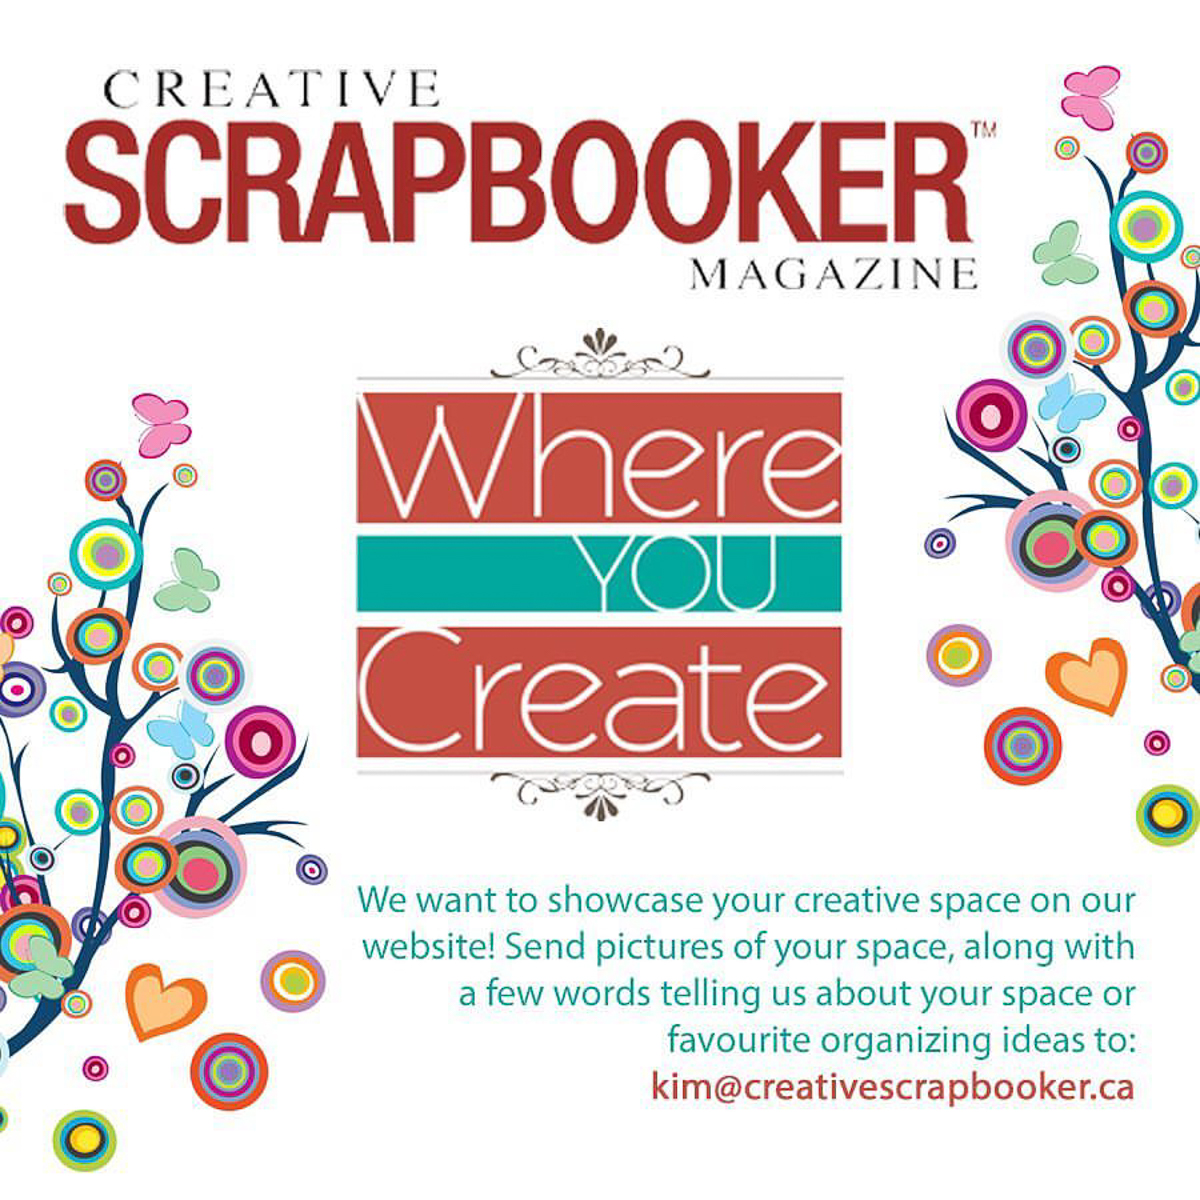 WHERE YOU CREATE/submissions/organize/Creative Scrapbooker Magazine/creative spaces